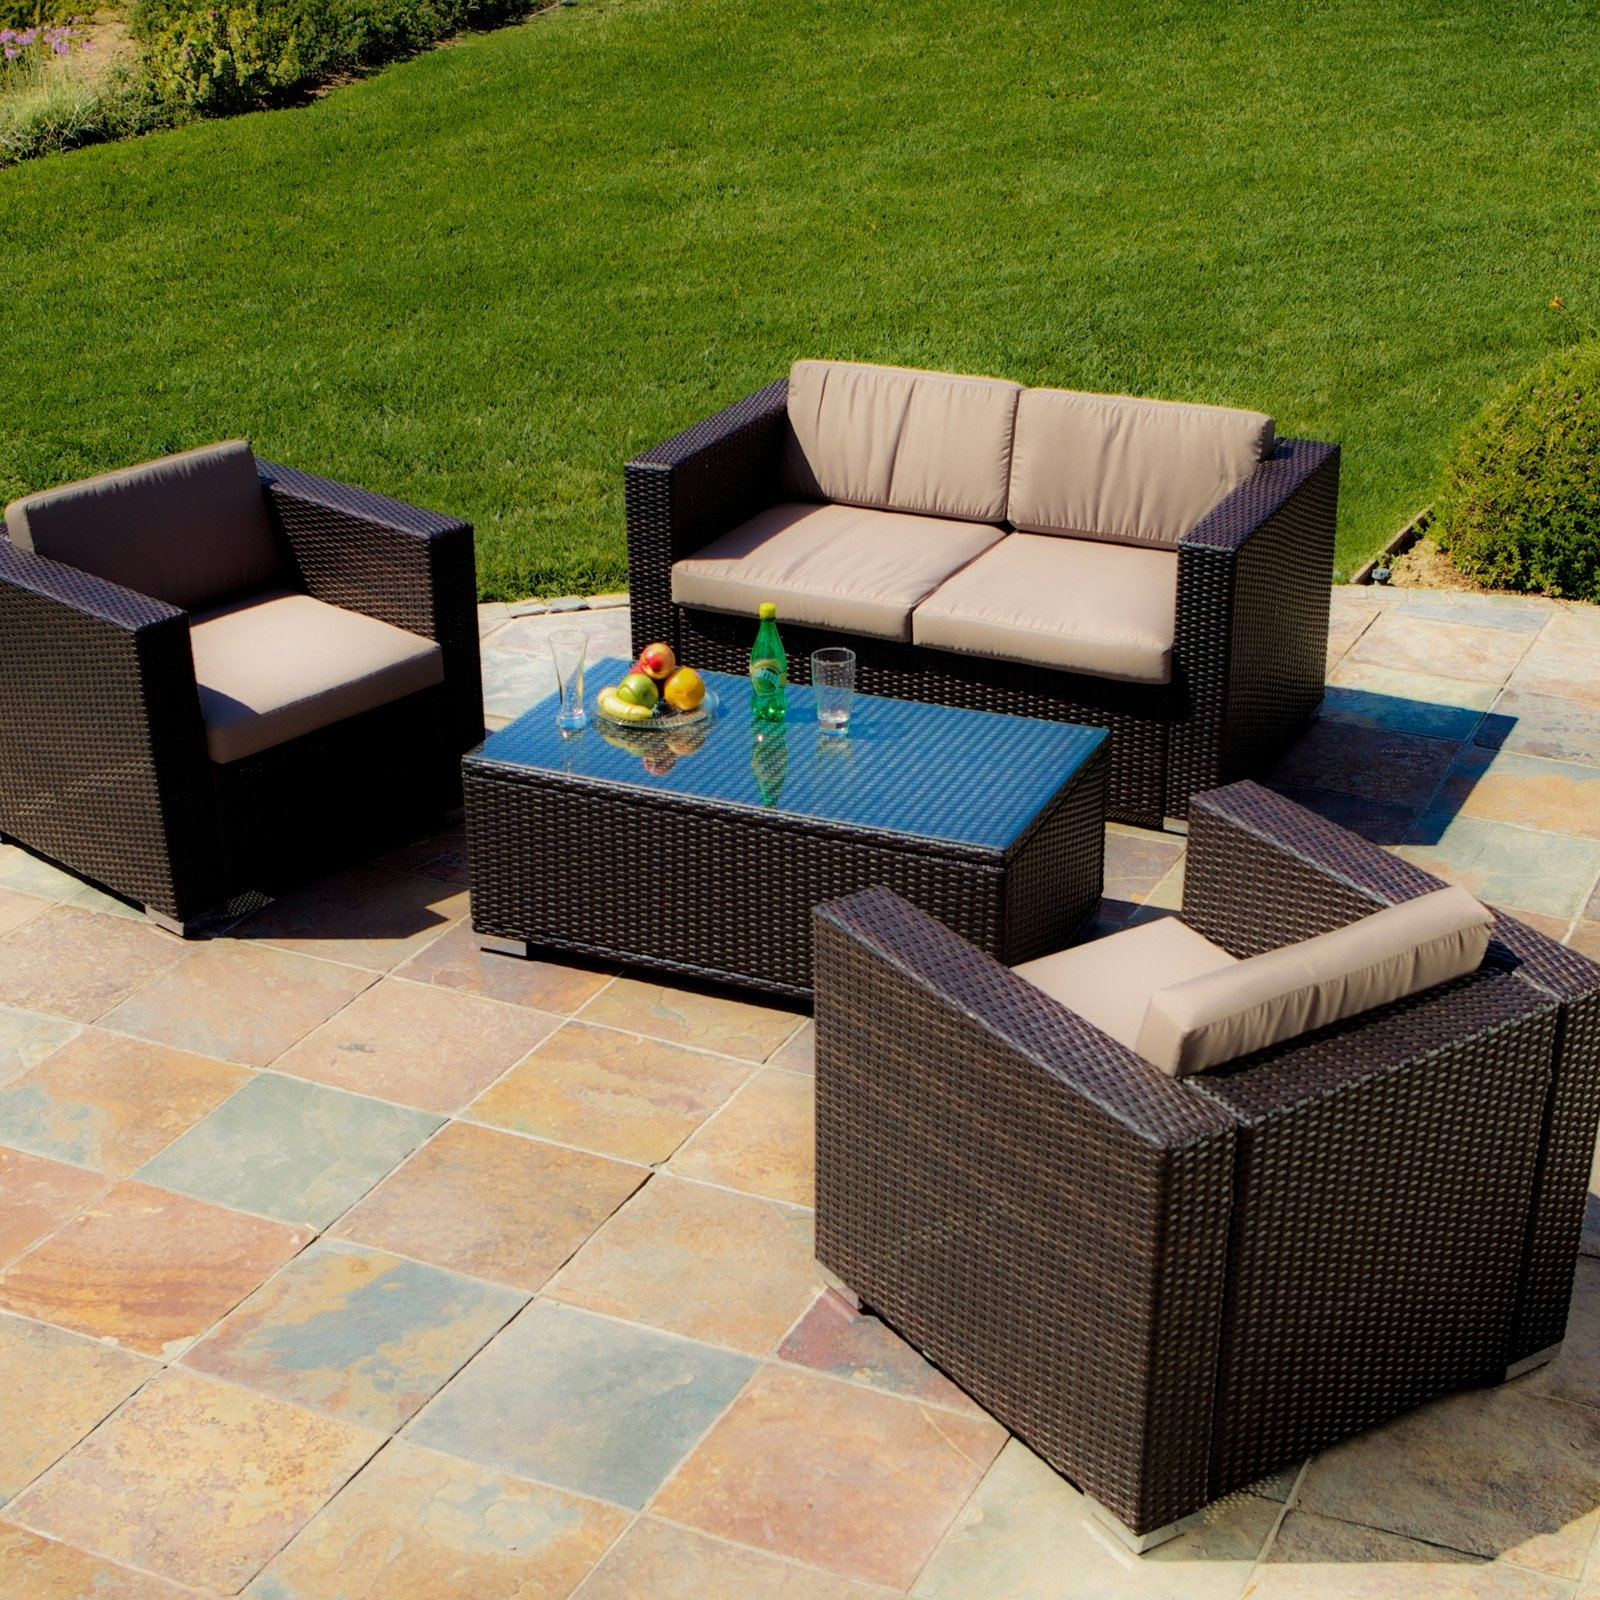 Murano All Weather Wicker Outdoor Conversation Set – Walmart Regarding Most Recently Released 4 Piece Patio Conversation Sets (View 5 of 20)